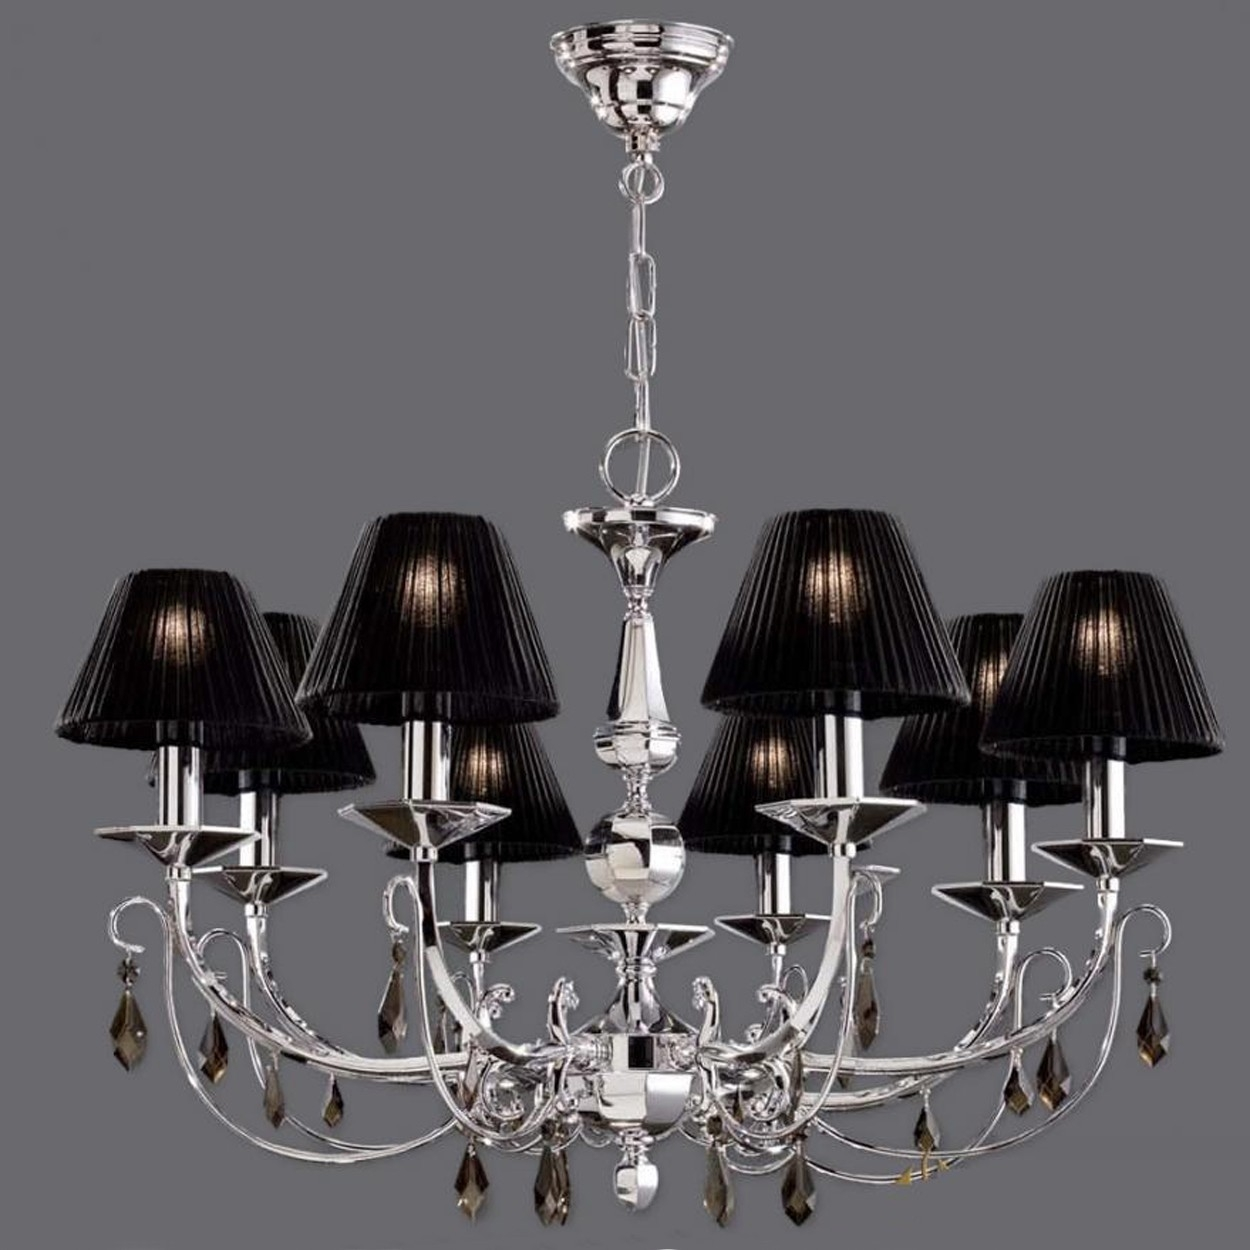 Outstanding Living Room Decor With Mini Chandelier Lamp Shades With Clip On Chandelier Lamp Shades (View 9 of 25)